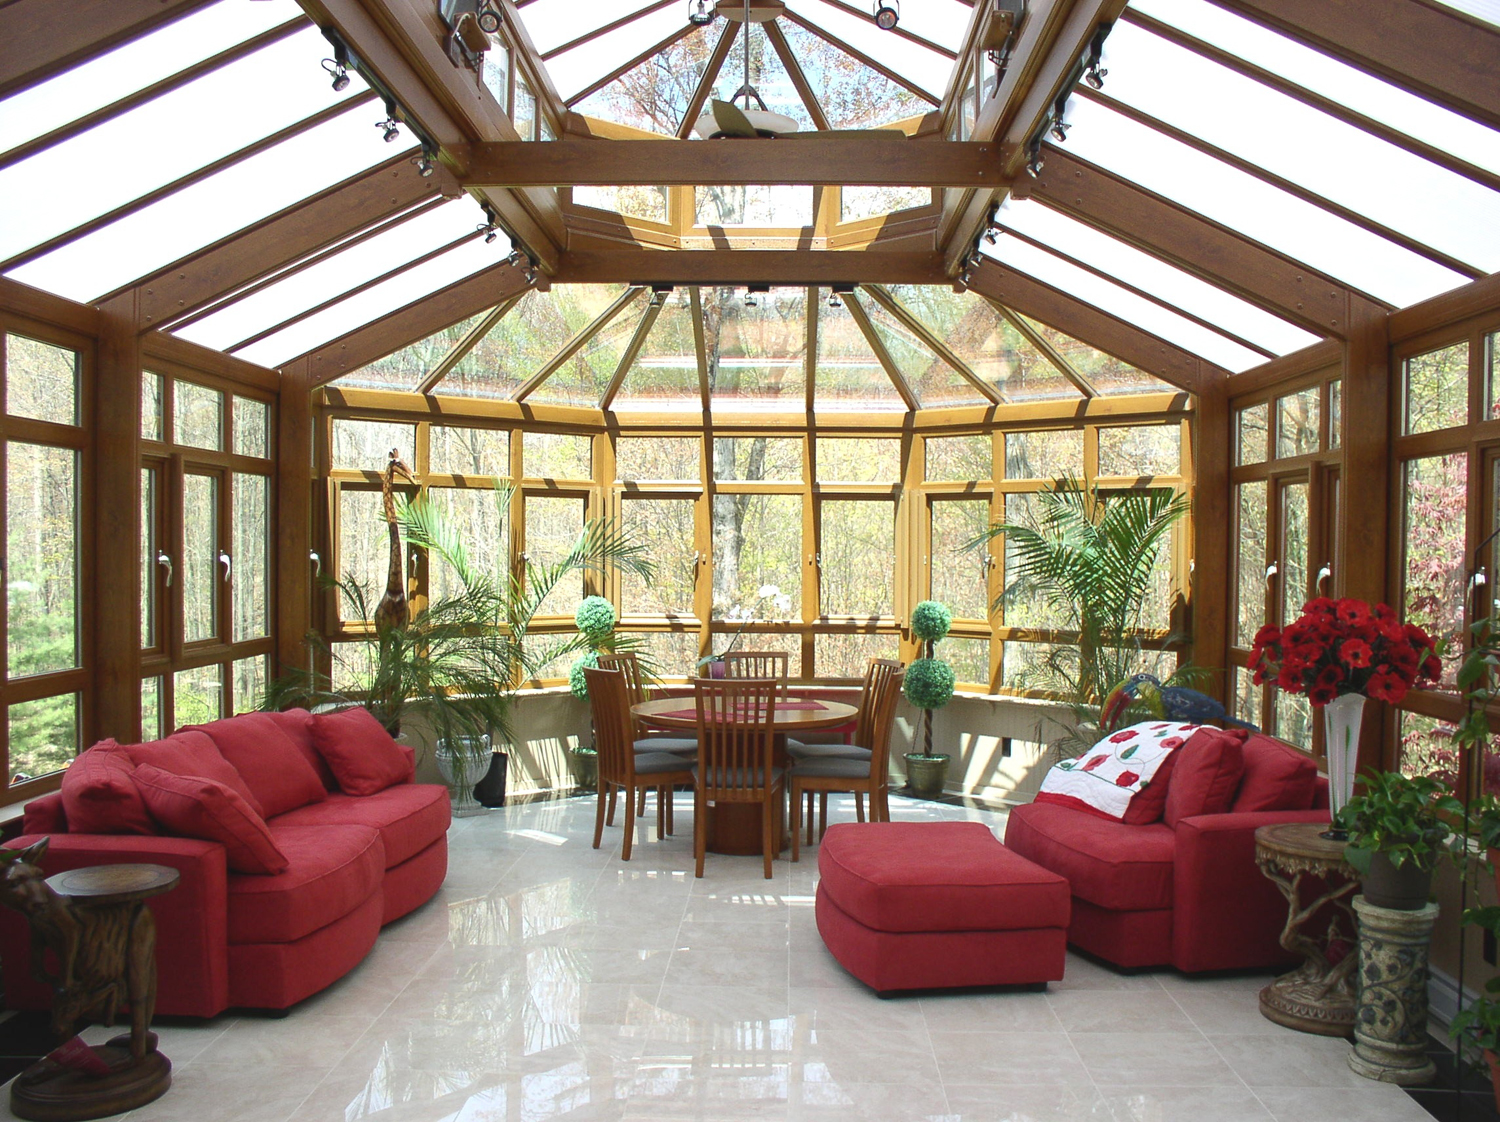 Building Plans For Sunrooms Find House Plans